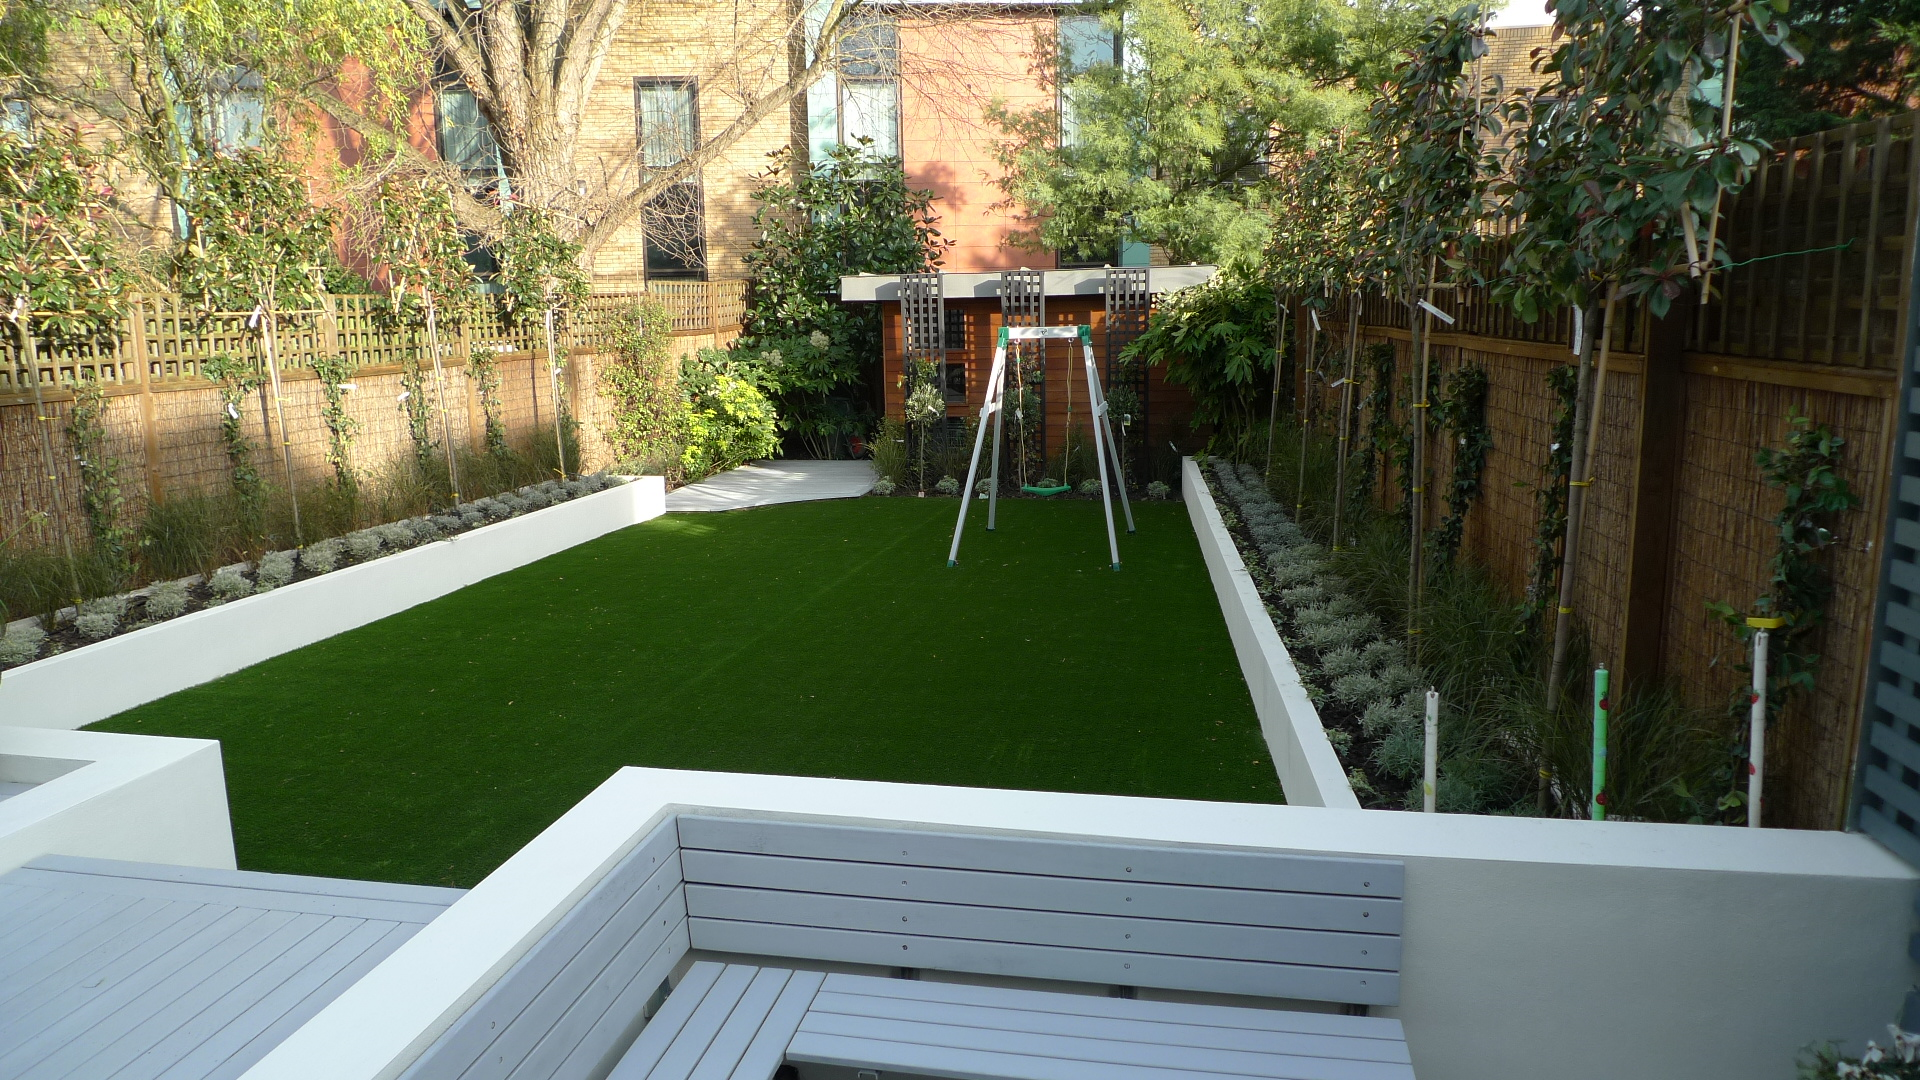 Modern garden design ideas london london garden design Large backyard design ideas